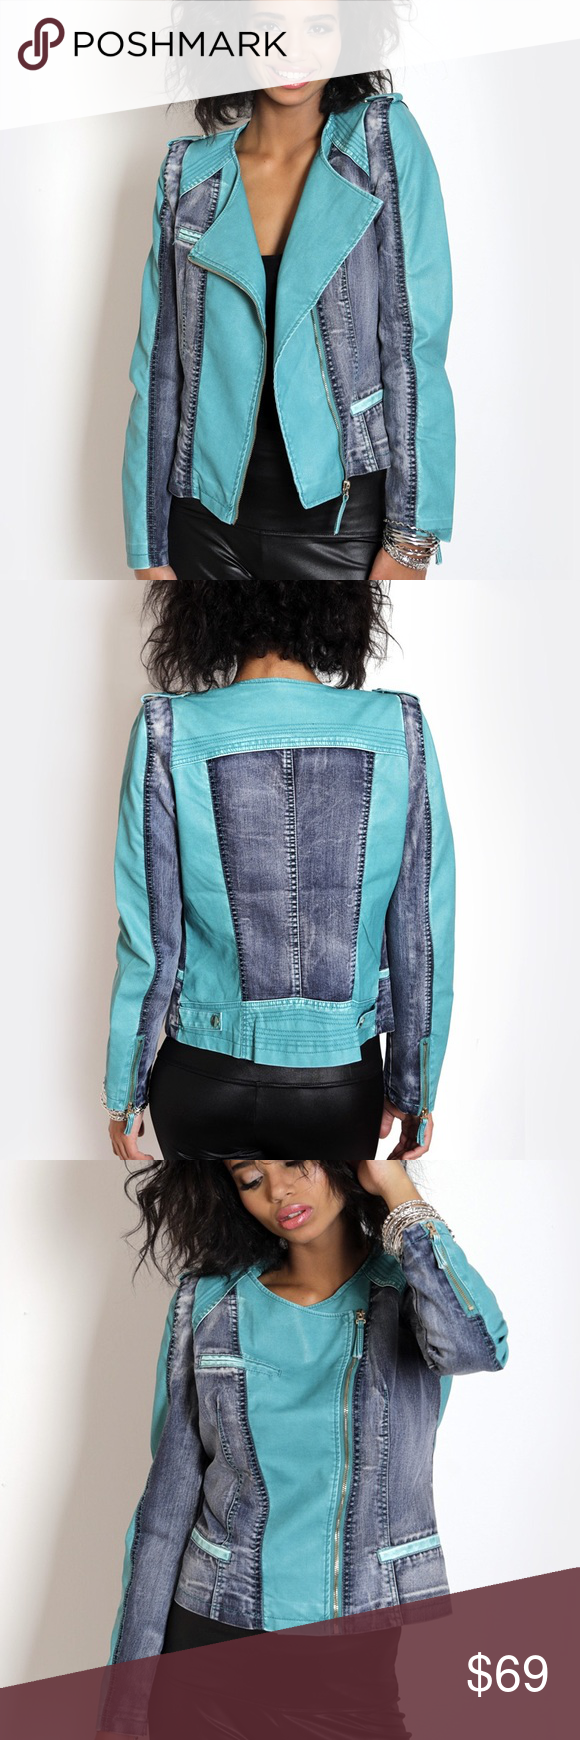 1 Day Sale! NWT Turquoise Faux Leather Jacket, M Boutique